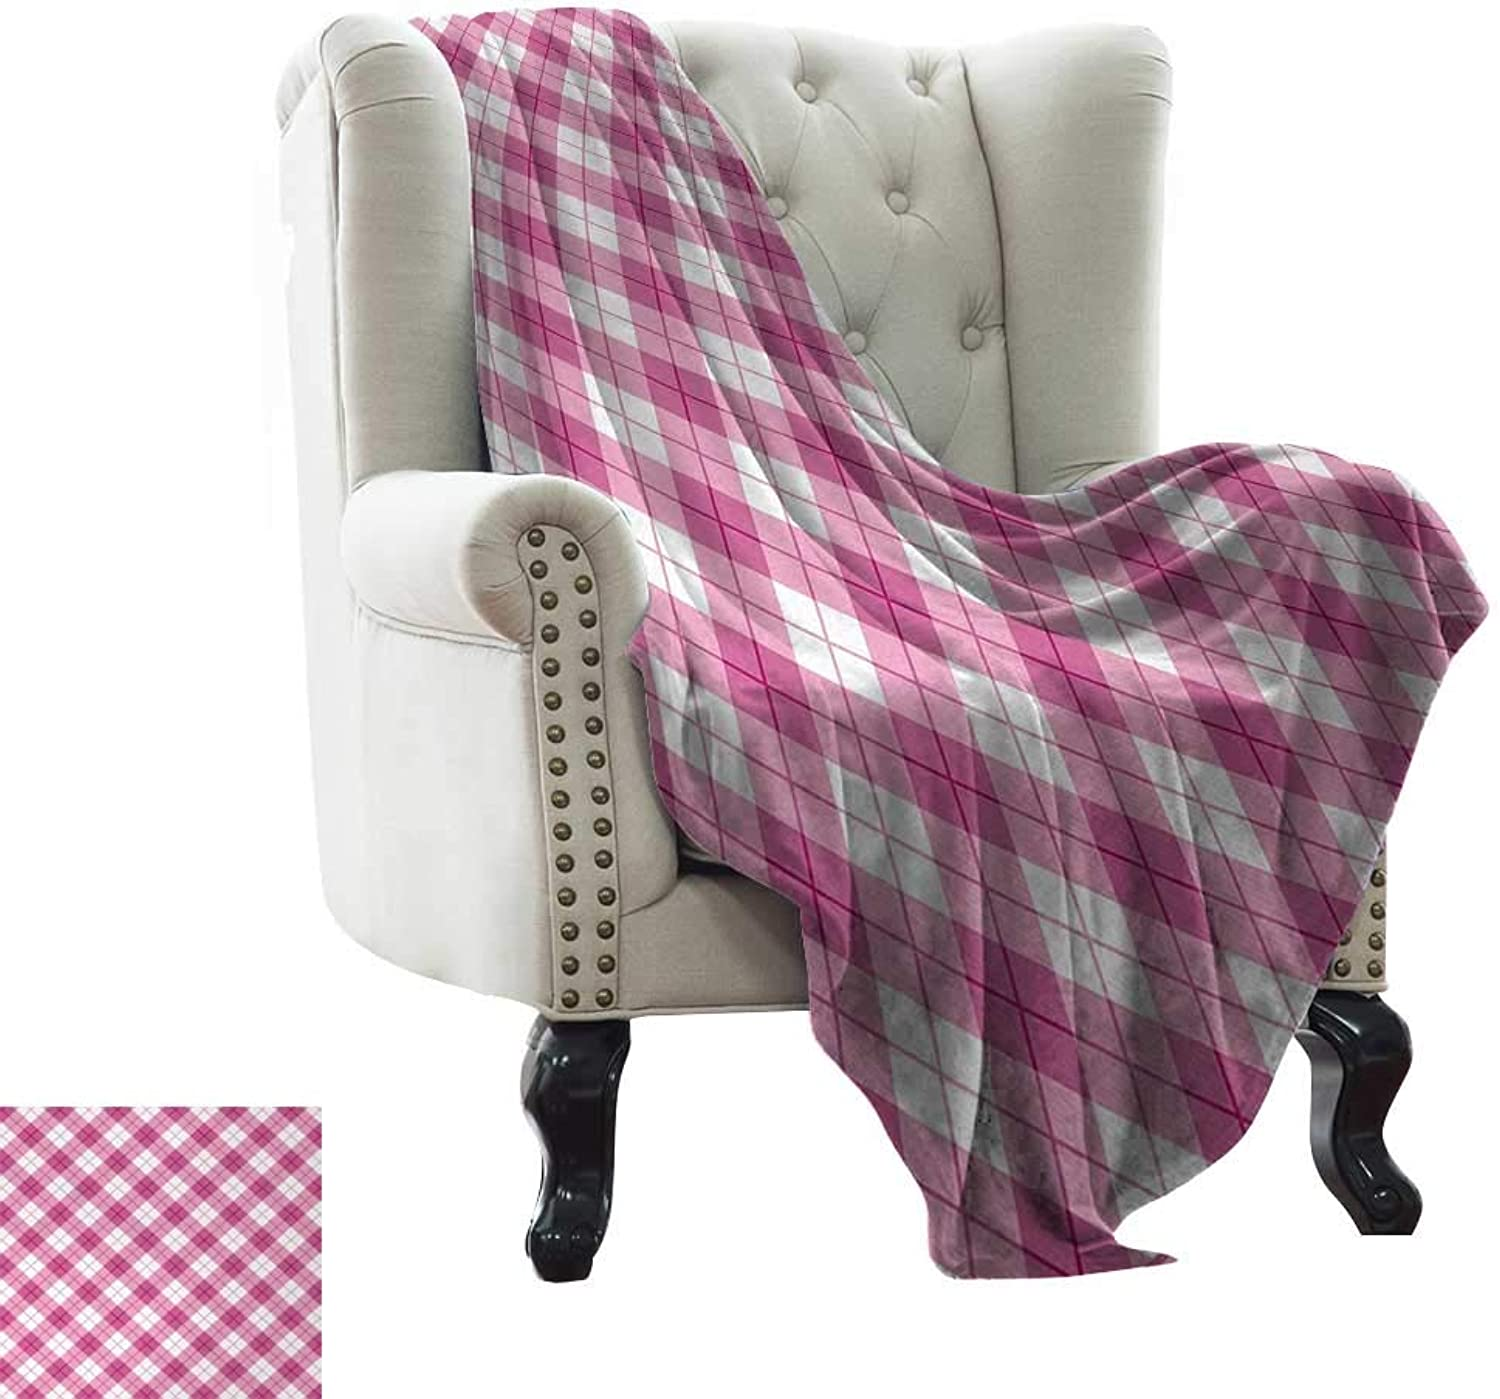 BelleAckerman Queen Size Blanket Abstract,Geometric Diagonal Figure in Pastel color Girls Style Checked Design,Fuchsia Light Pink White for Bed & Couch Sofa Easy Care 35 x60